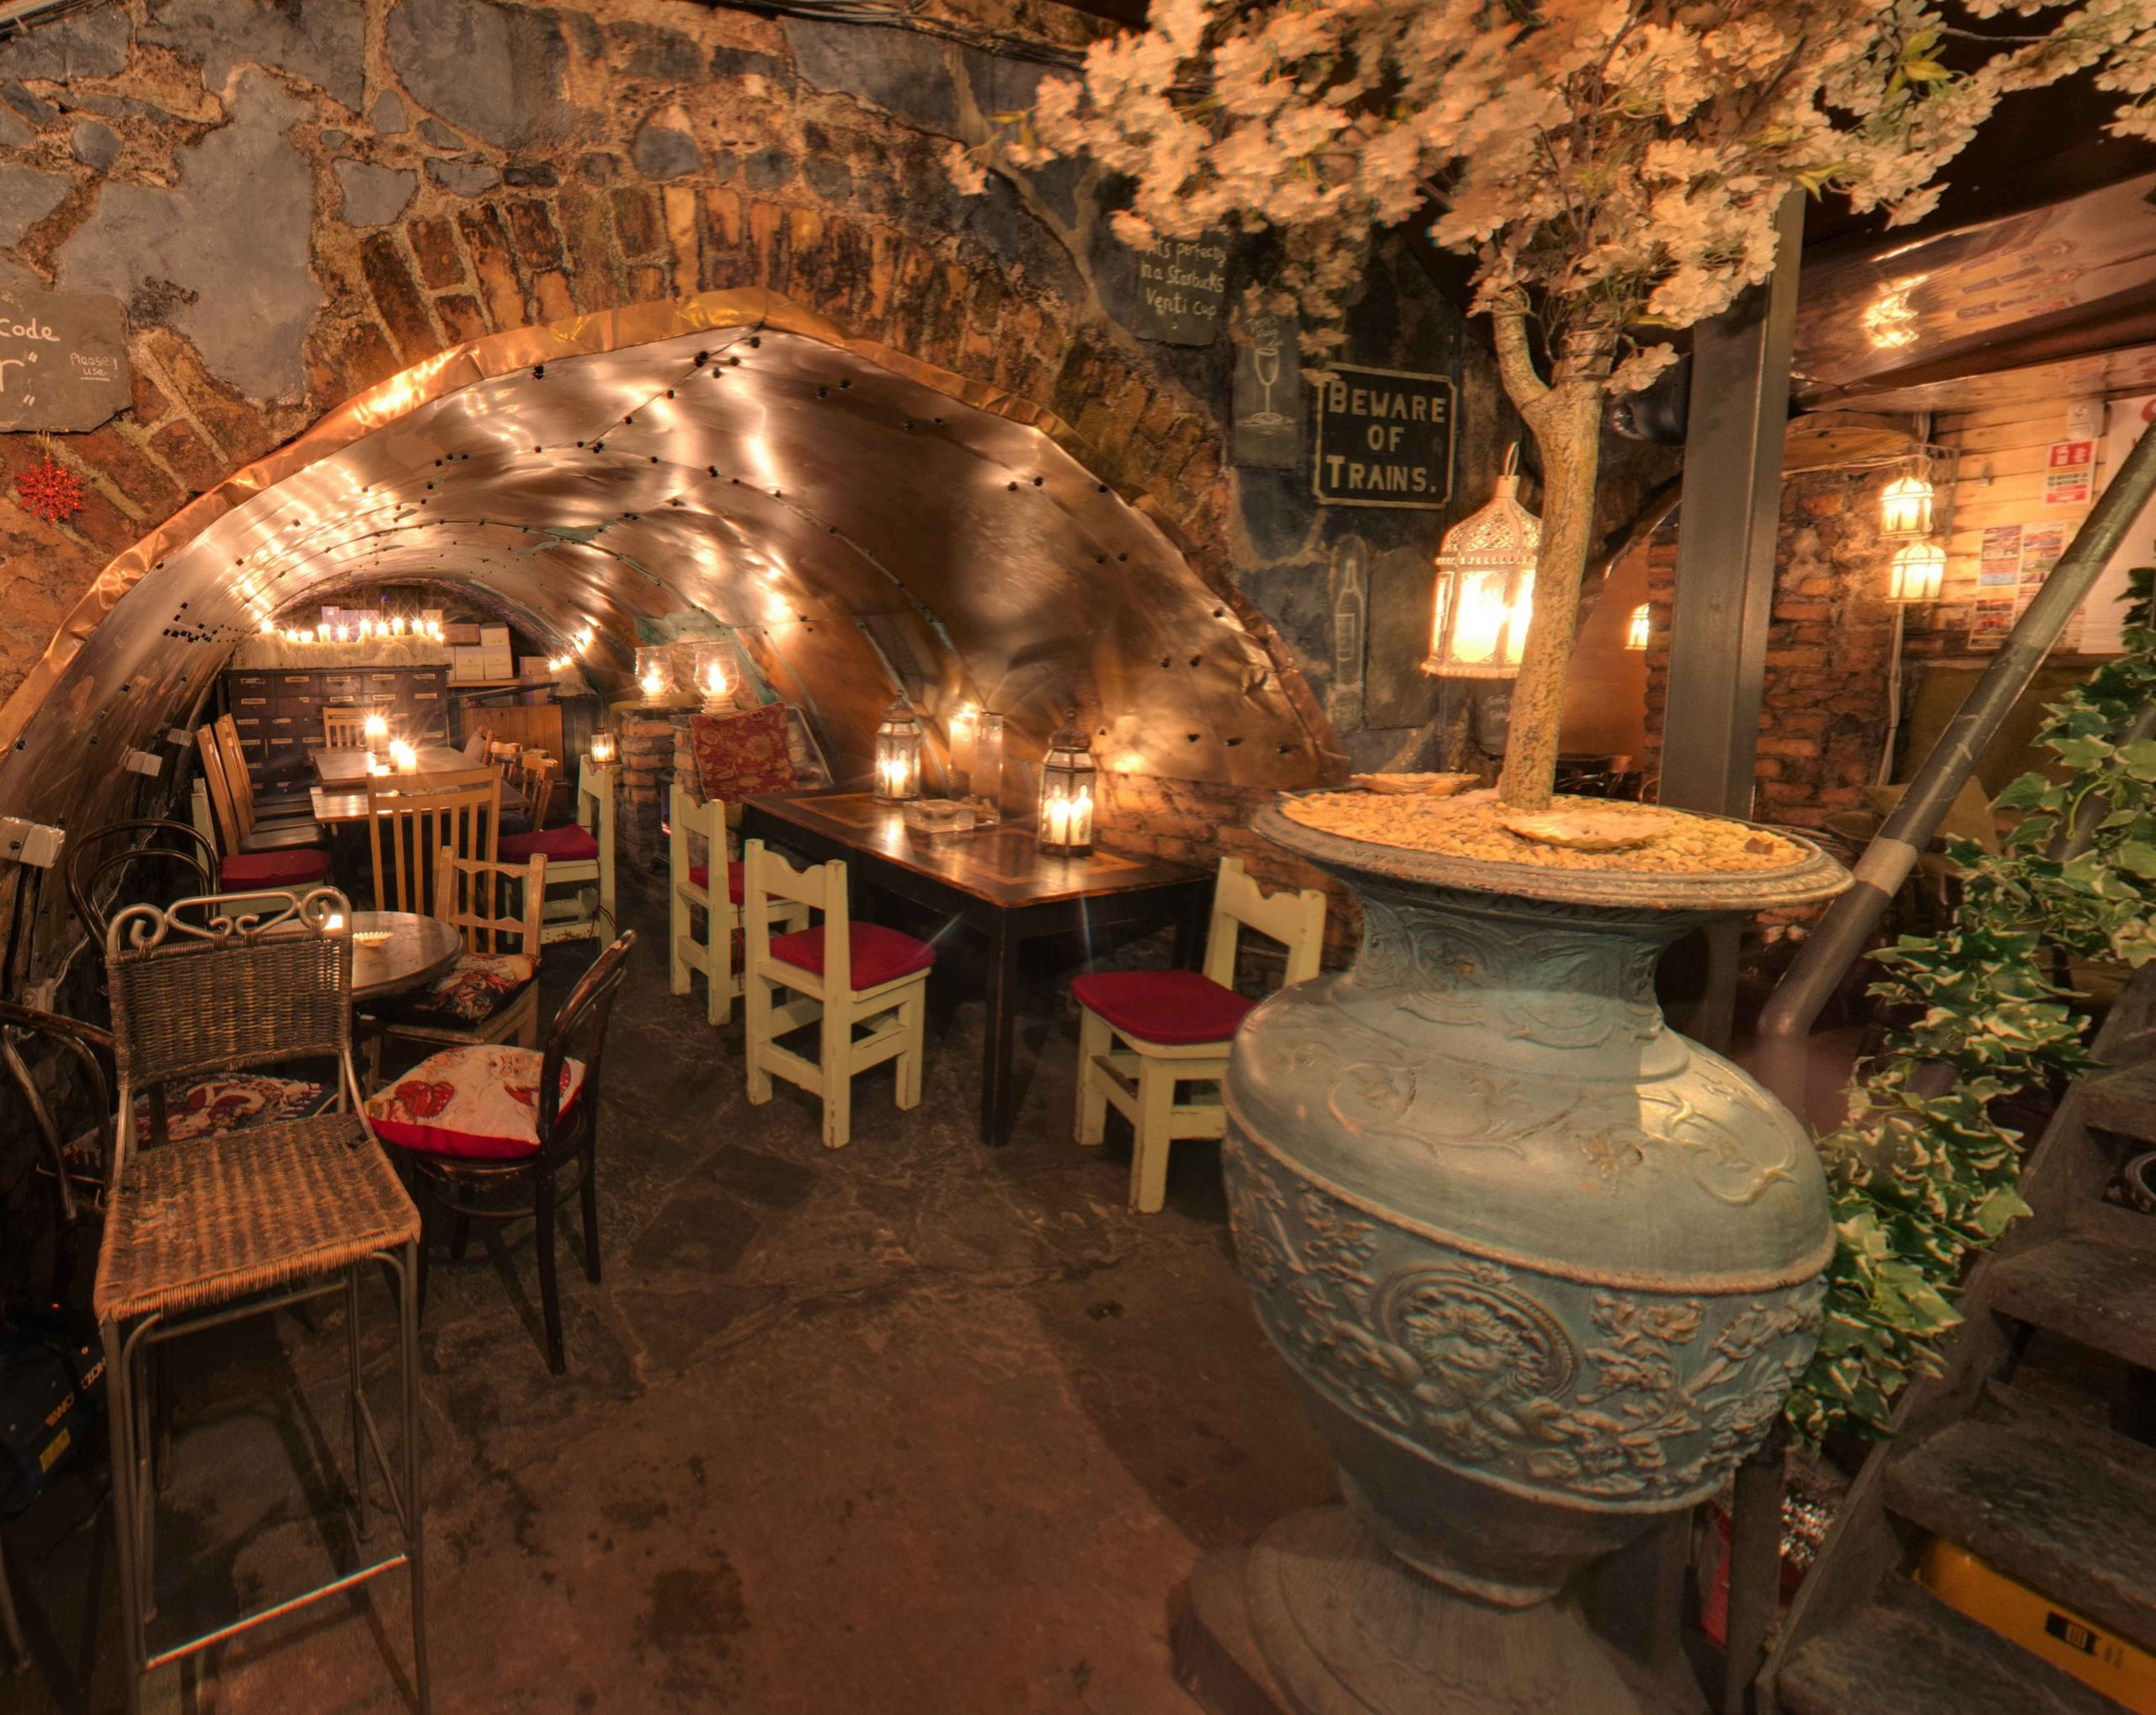 The Copper Room is a creative example of what can be done with the underground Georgian cellars